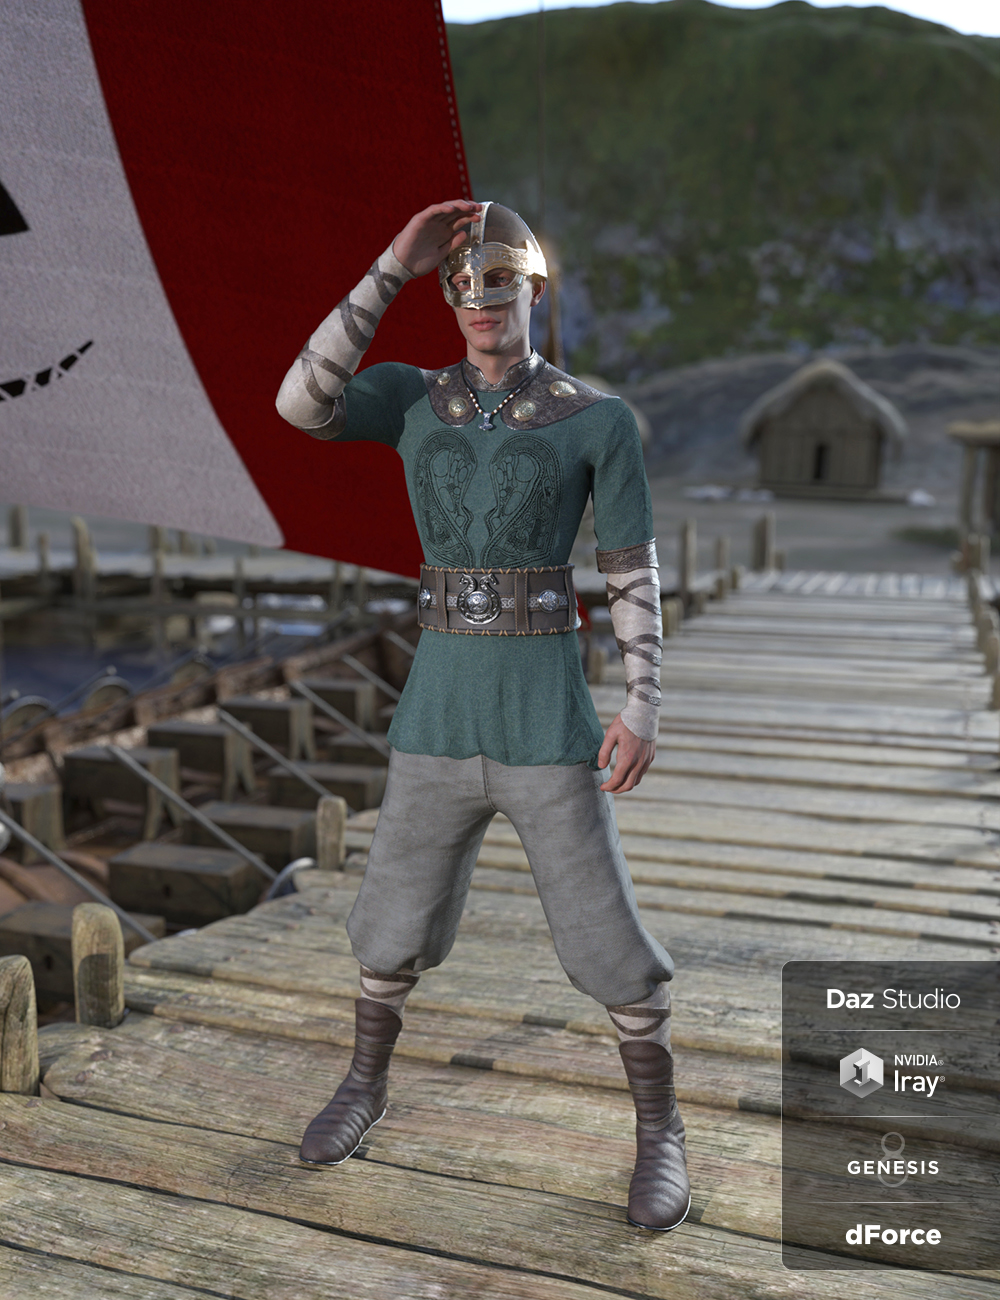 dForce Viking Commoner Outfit for Genesis 8 and Genesis 8.1 Males by: Cichy3D, 3D Models by Daz 3D